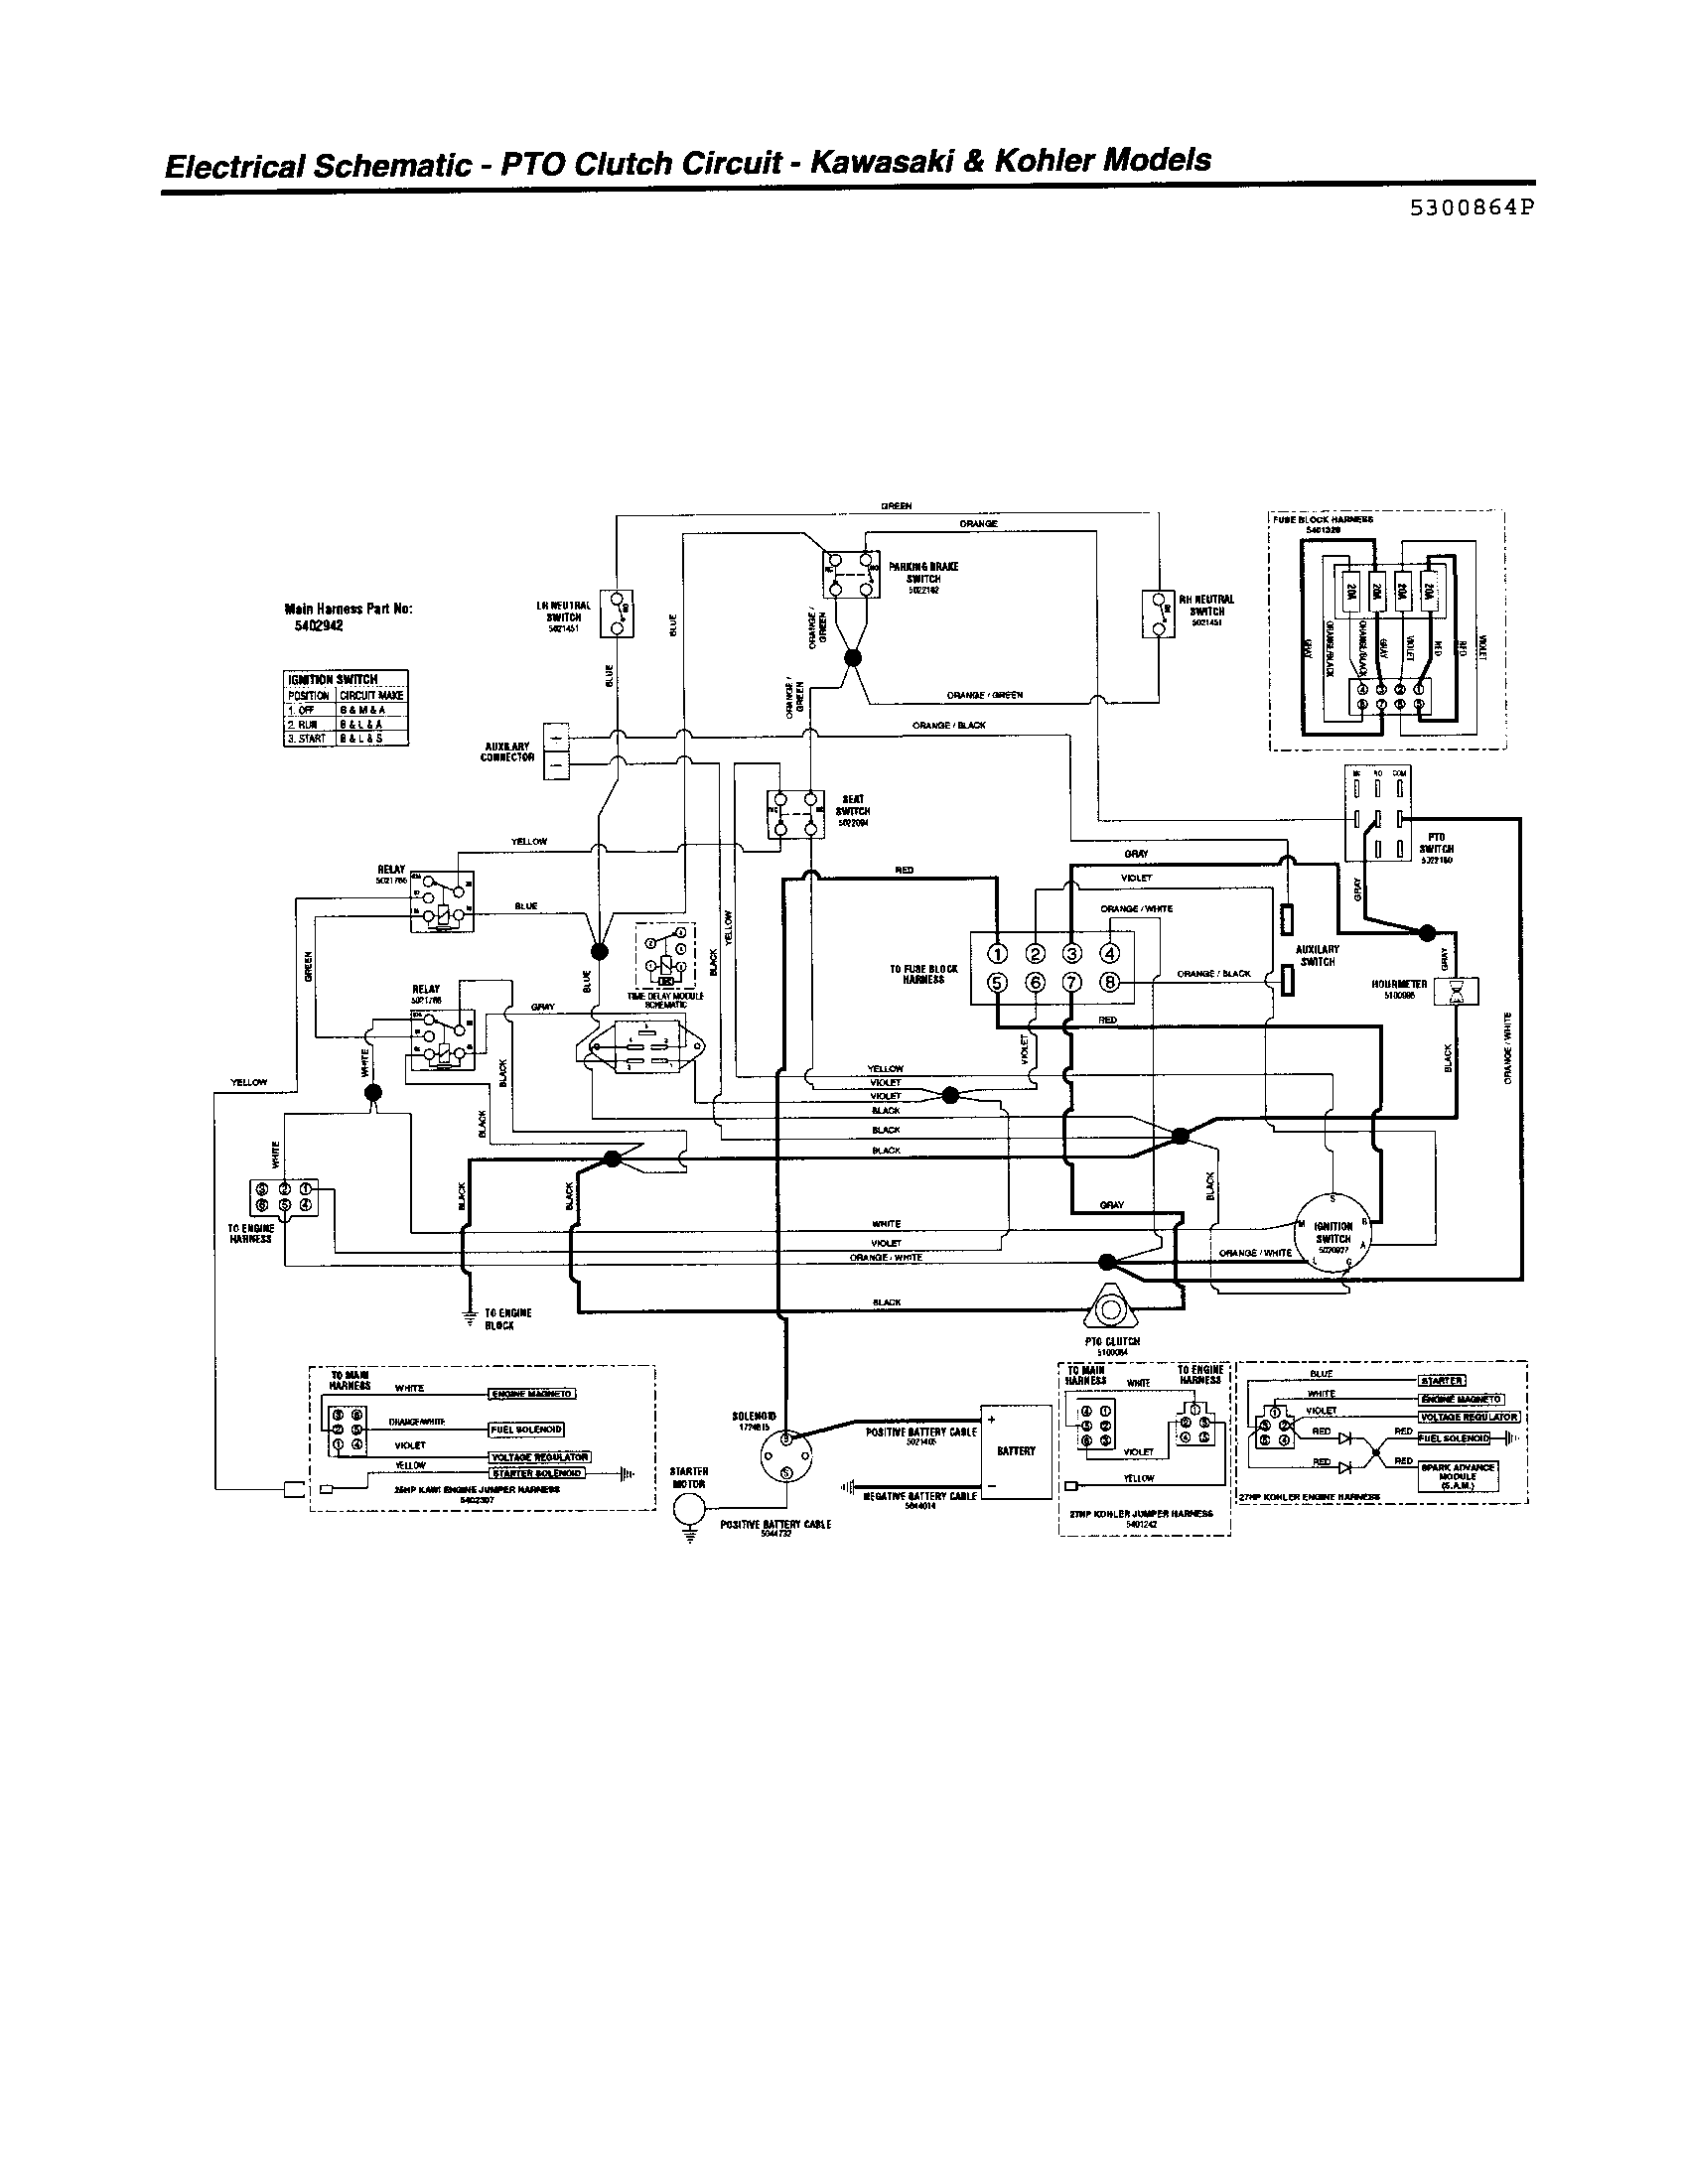 edd203c96939fe65be99faf05b27f9f2 country clipper jazee mowers wiring diagrams country clipper Briggs and Stratton Electrical Diagram at gsmx.co